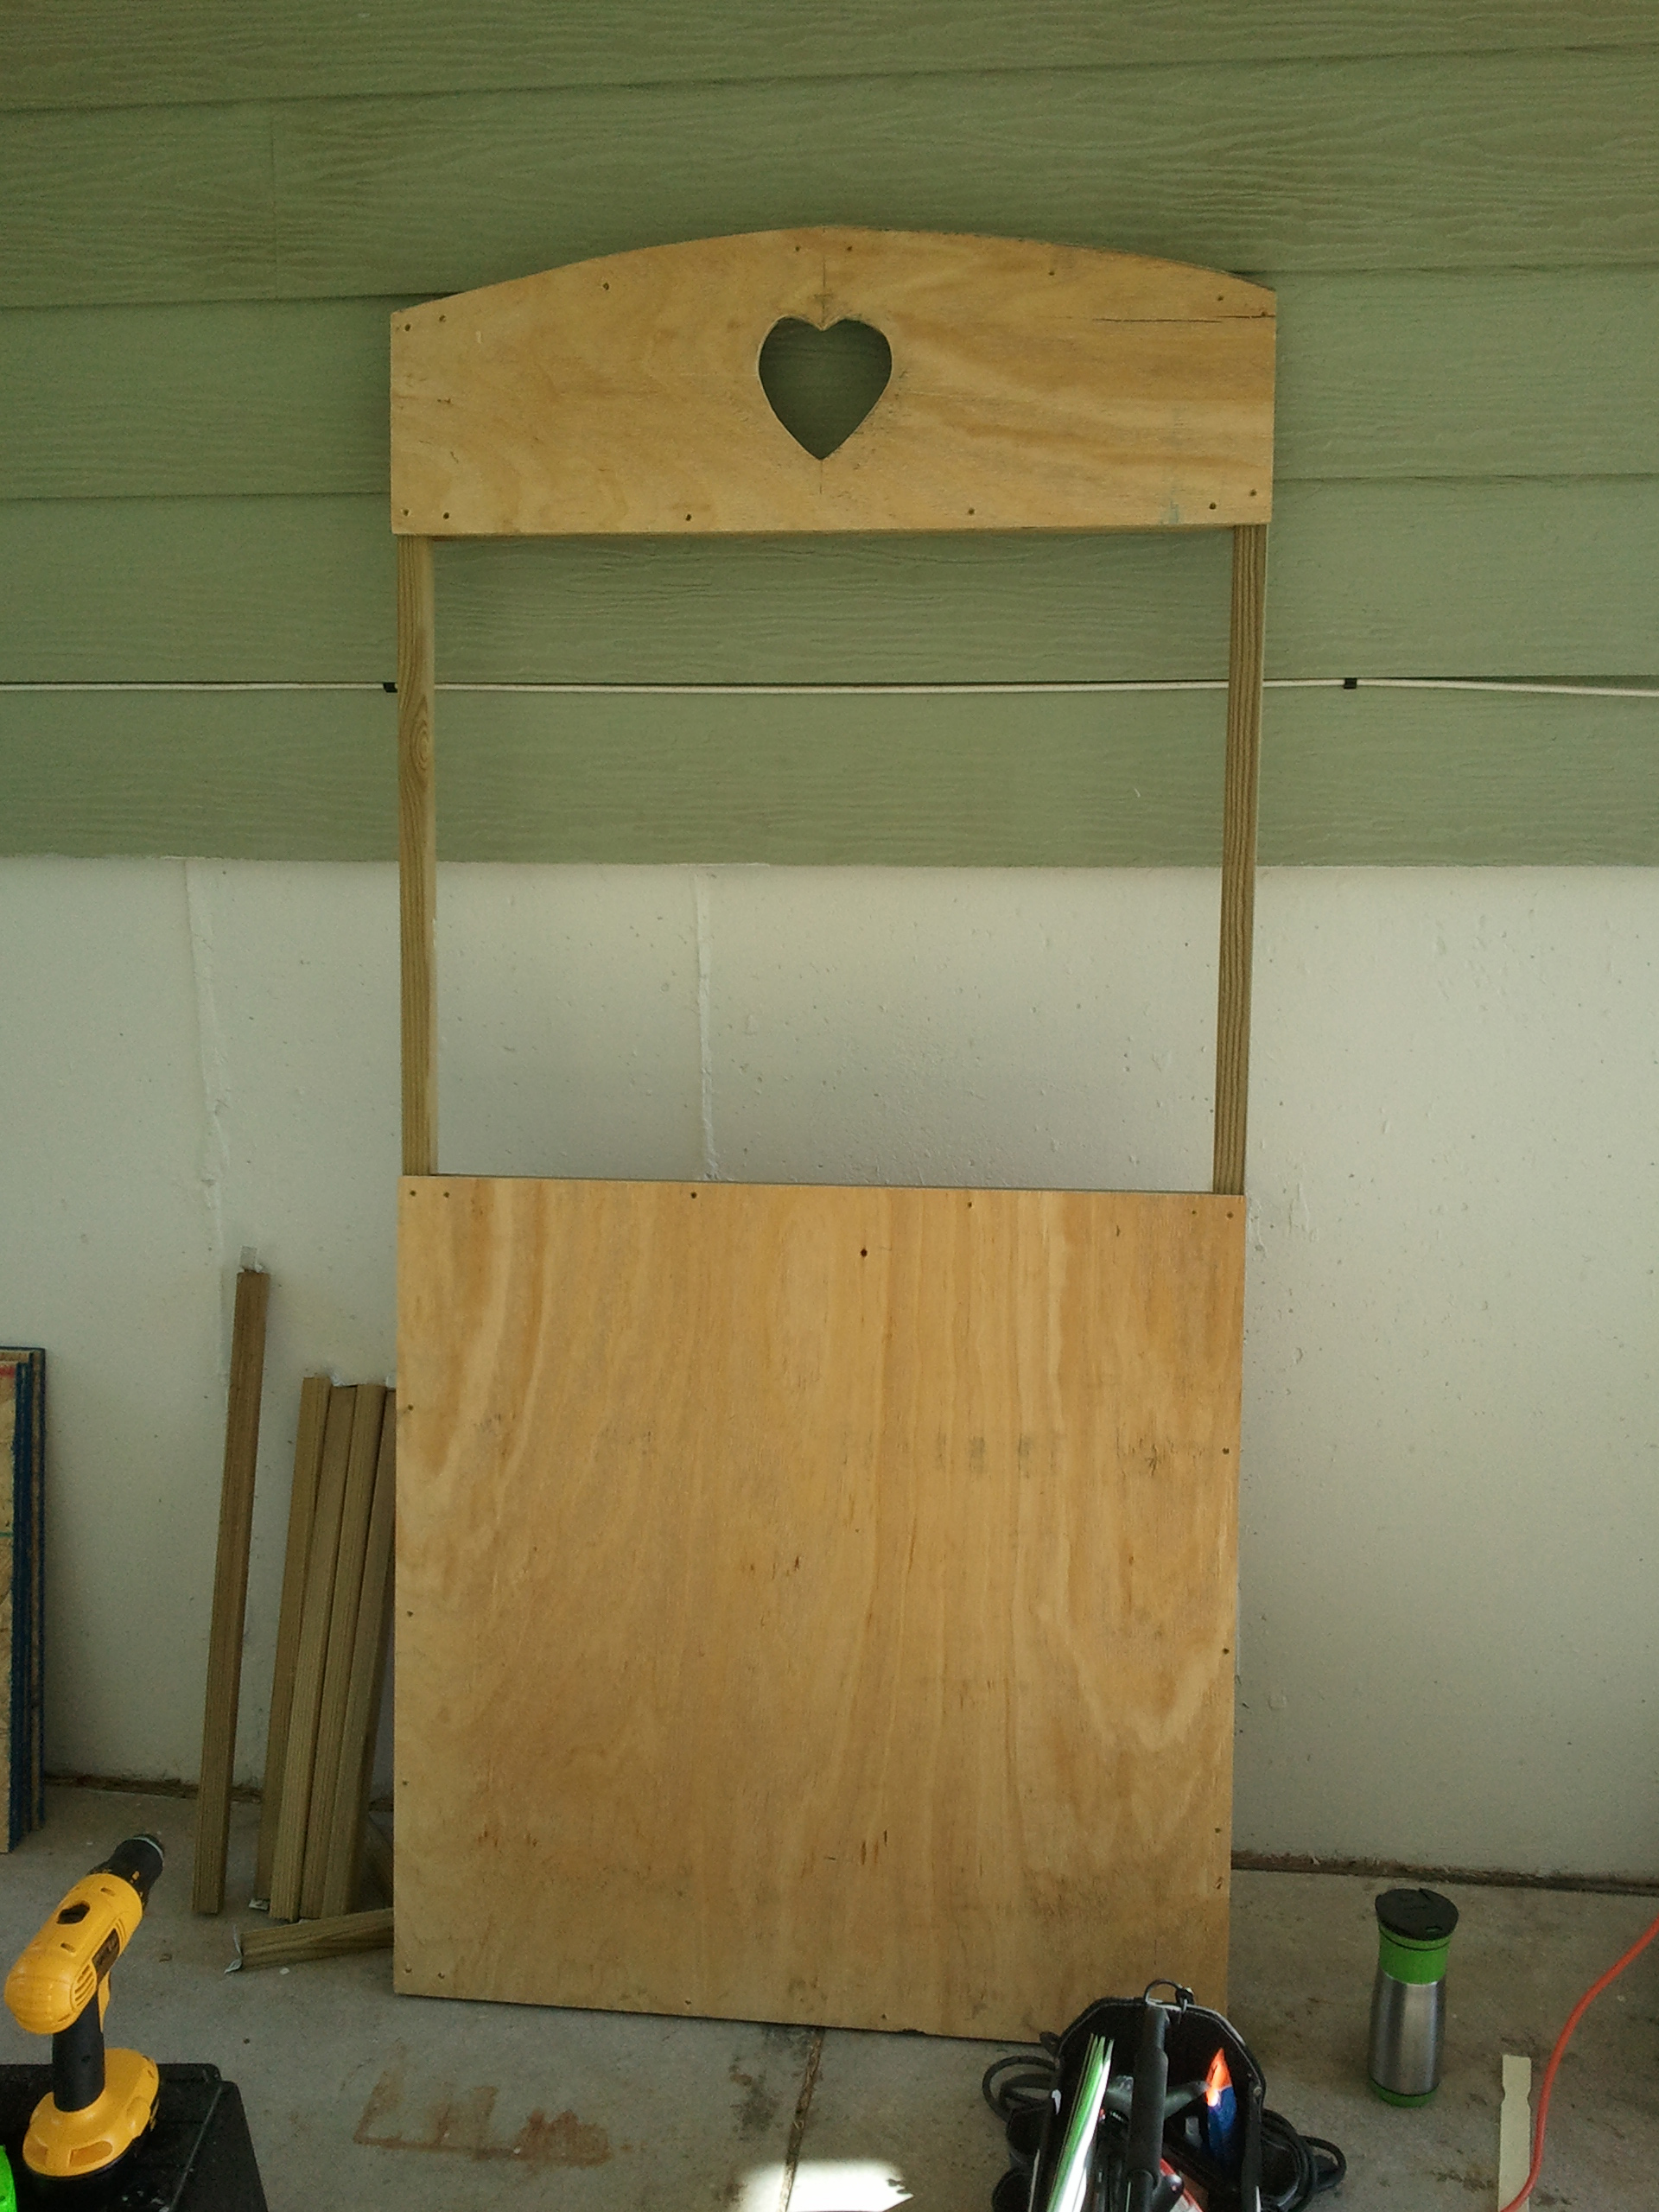 Grim Reaper Kissing Booth The Geek Woodworker